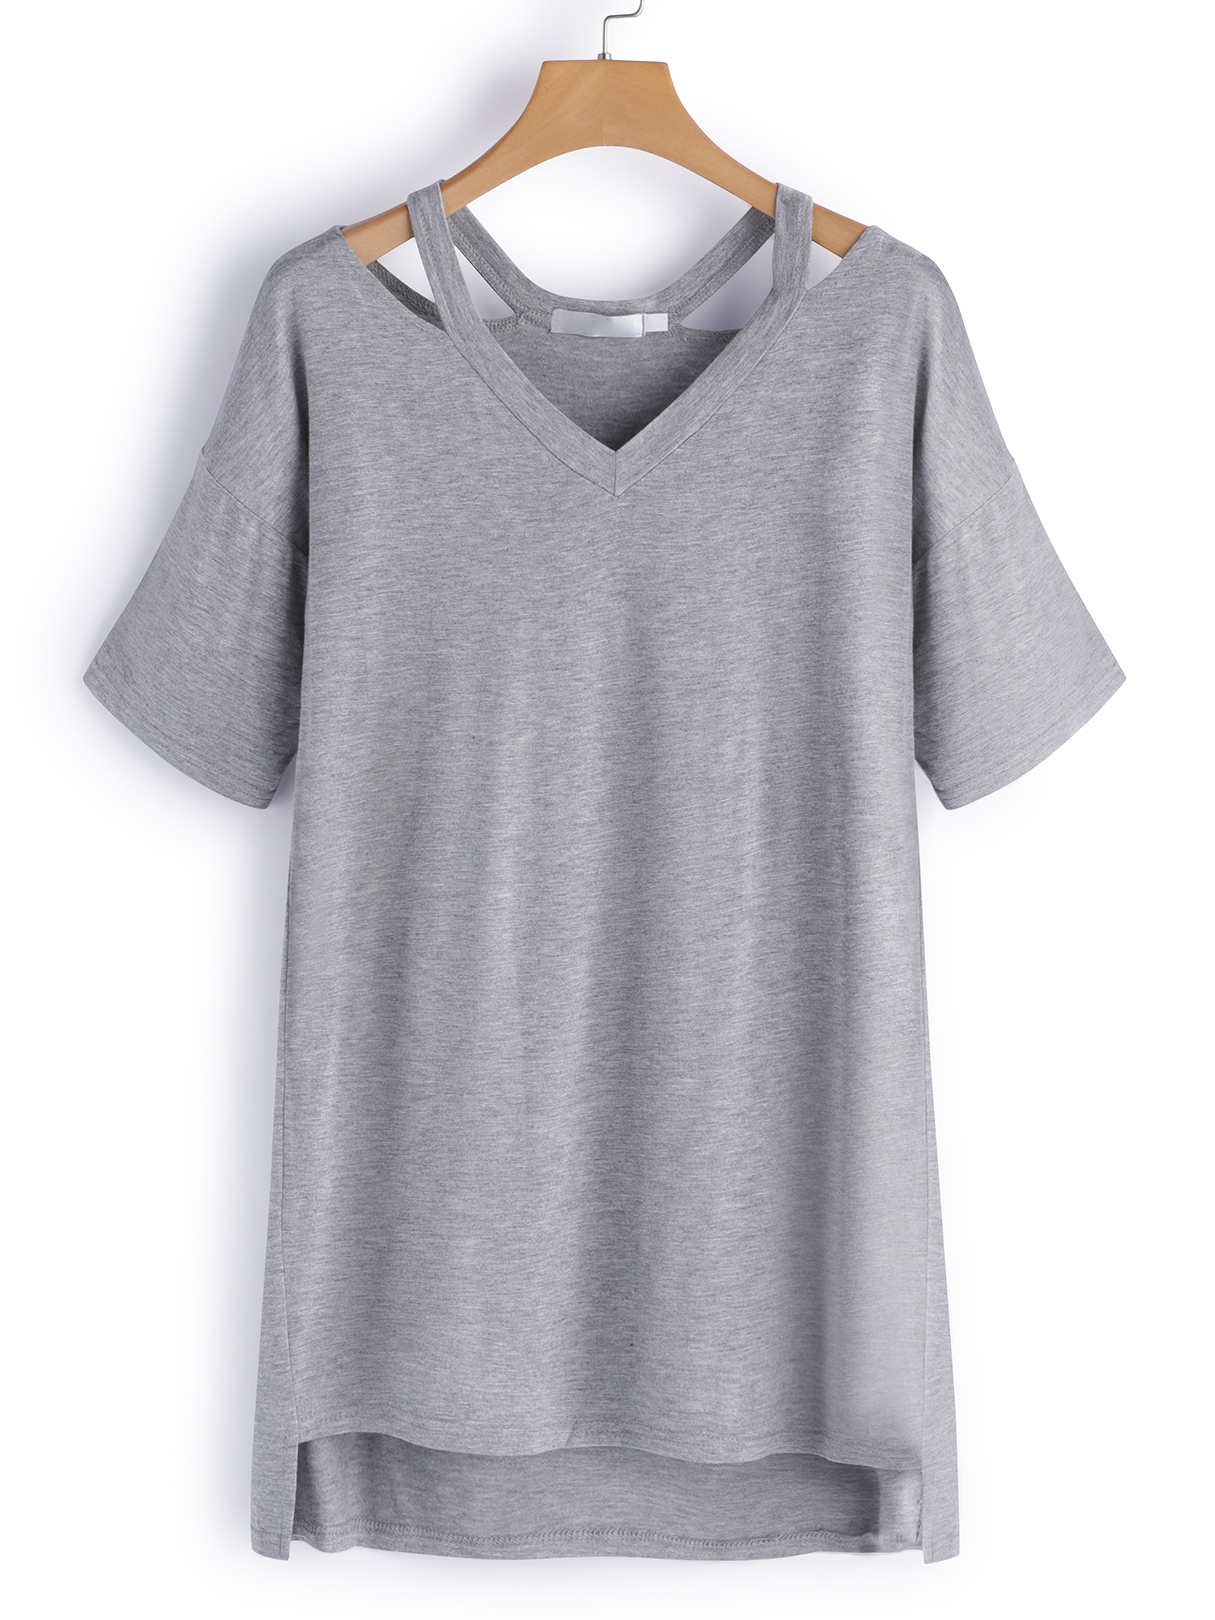 Grey Hollow Out V-neck Short Sleeves T-shirts